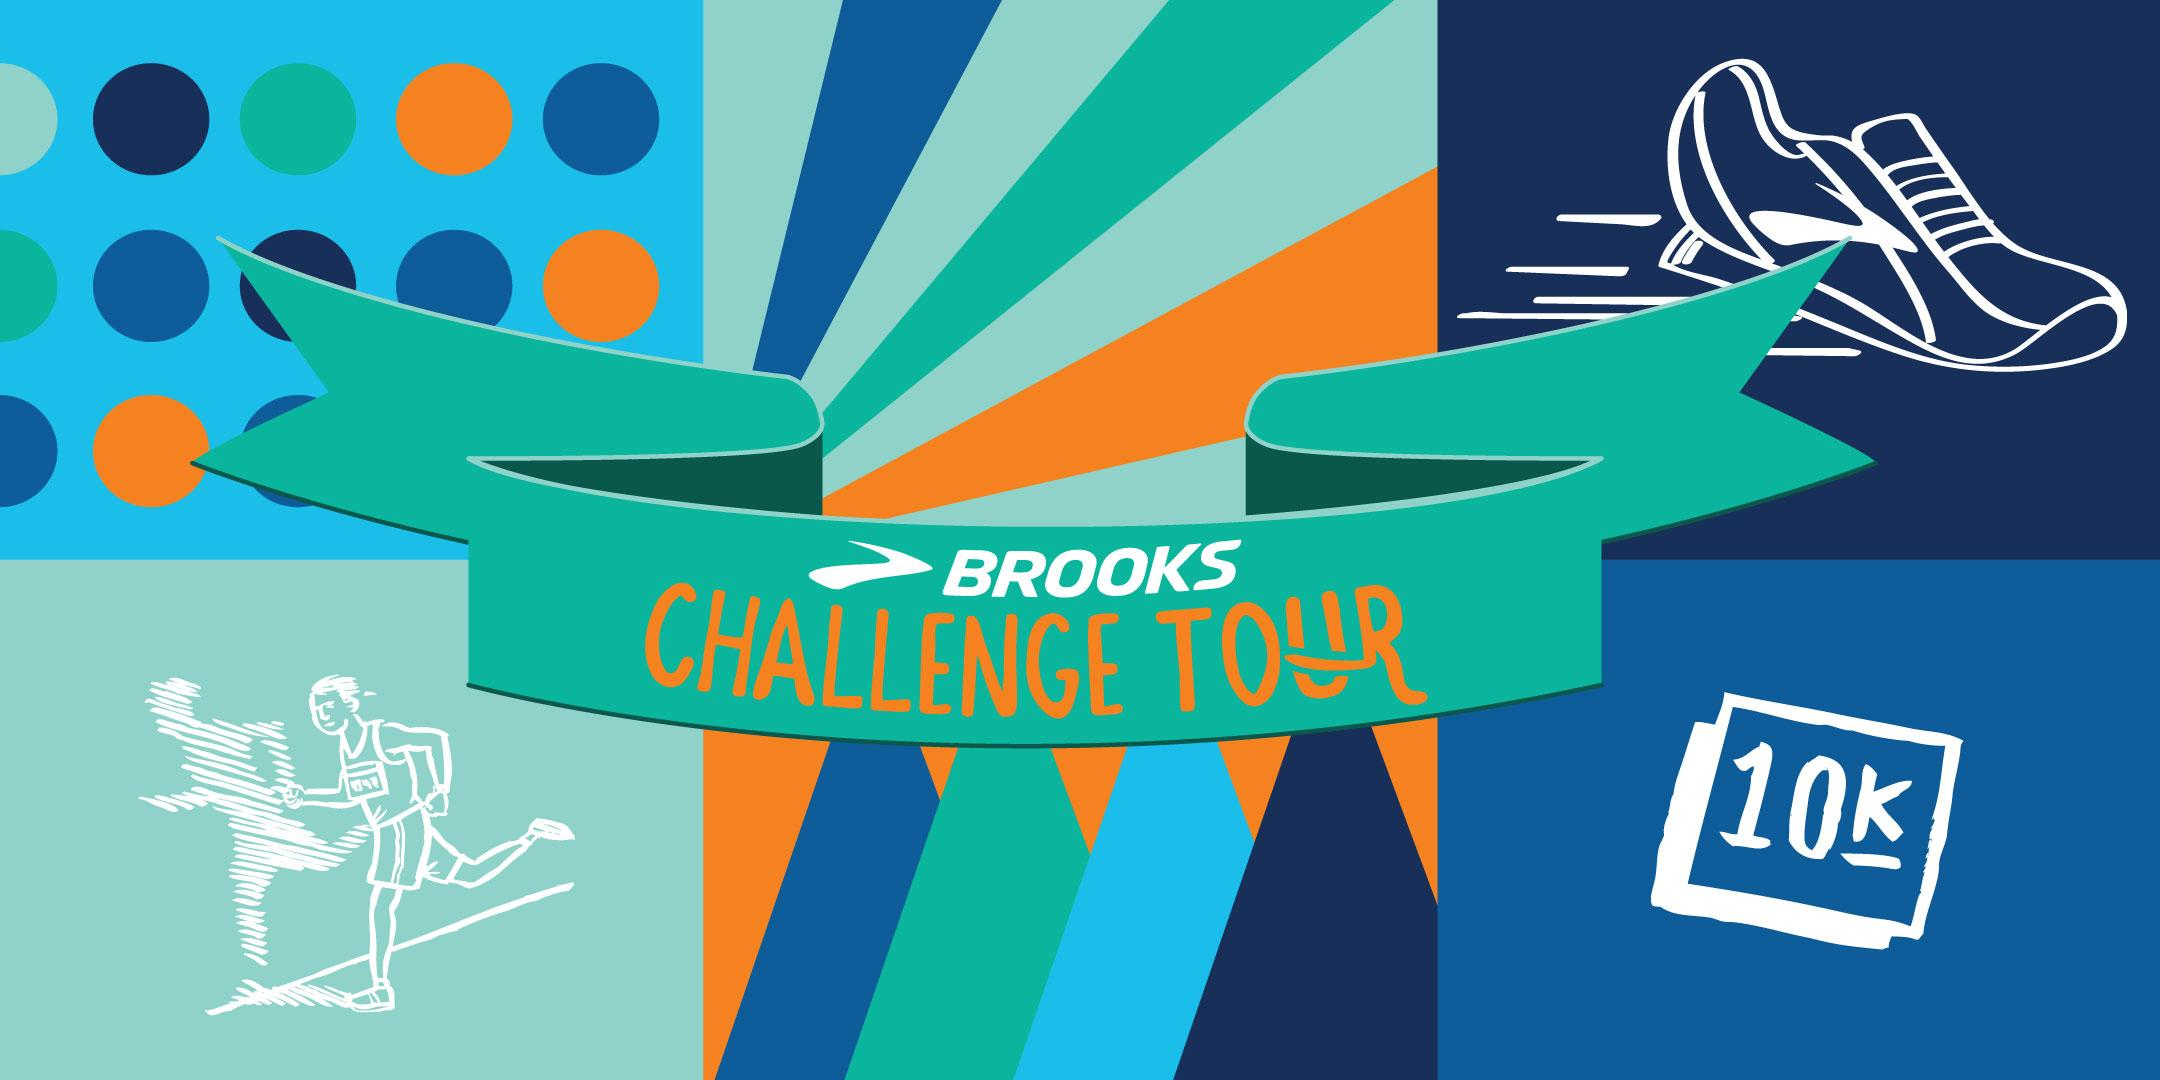 Brooks Challenge Tour - Robi Sport, Belluno